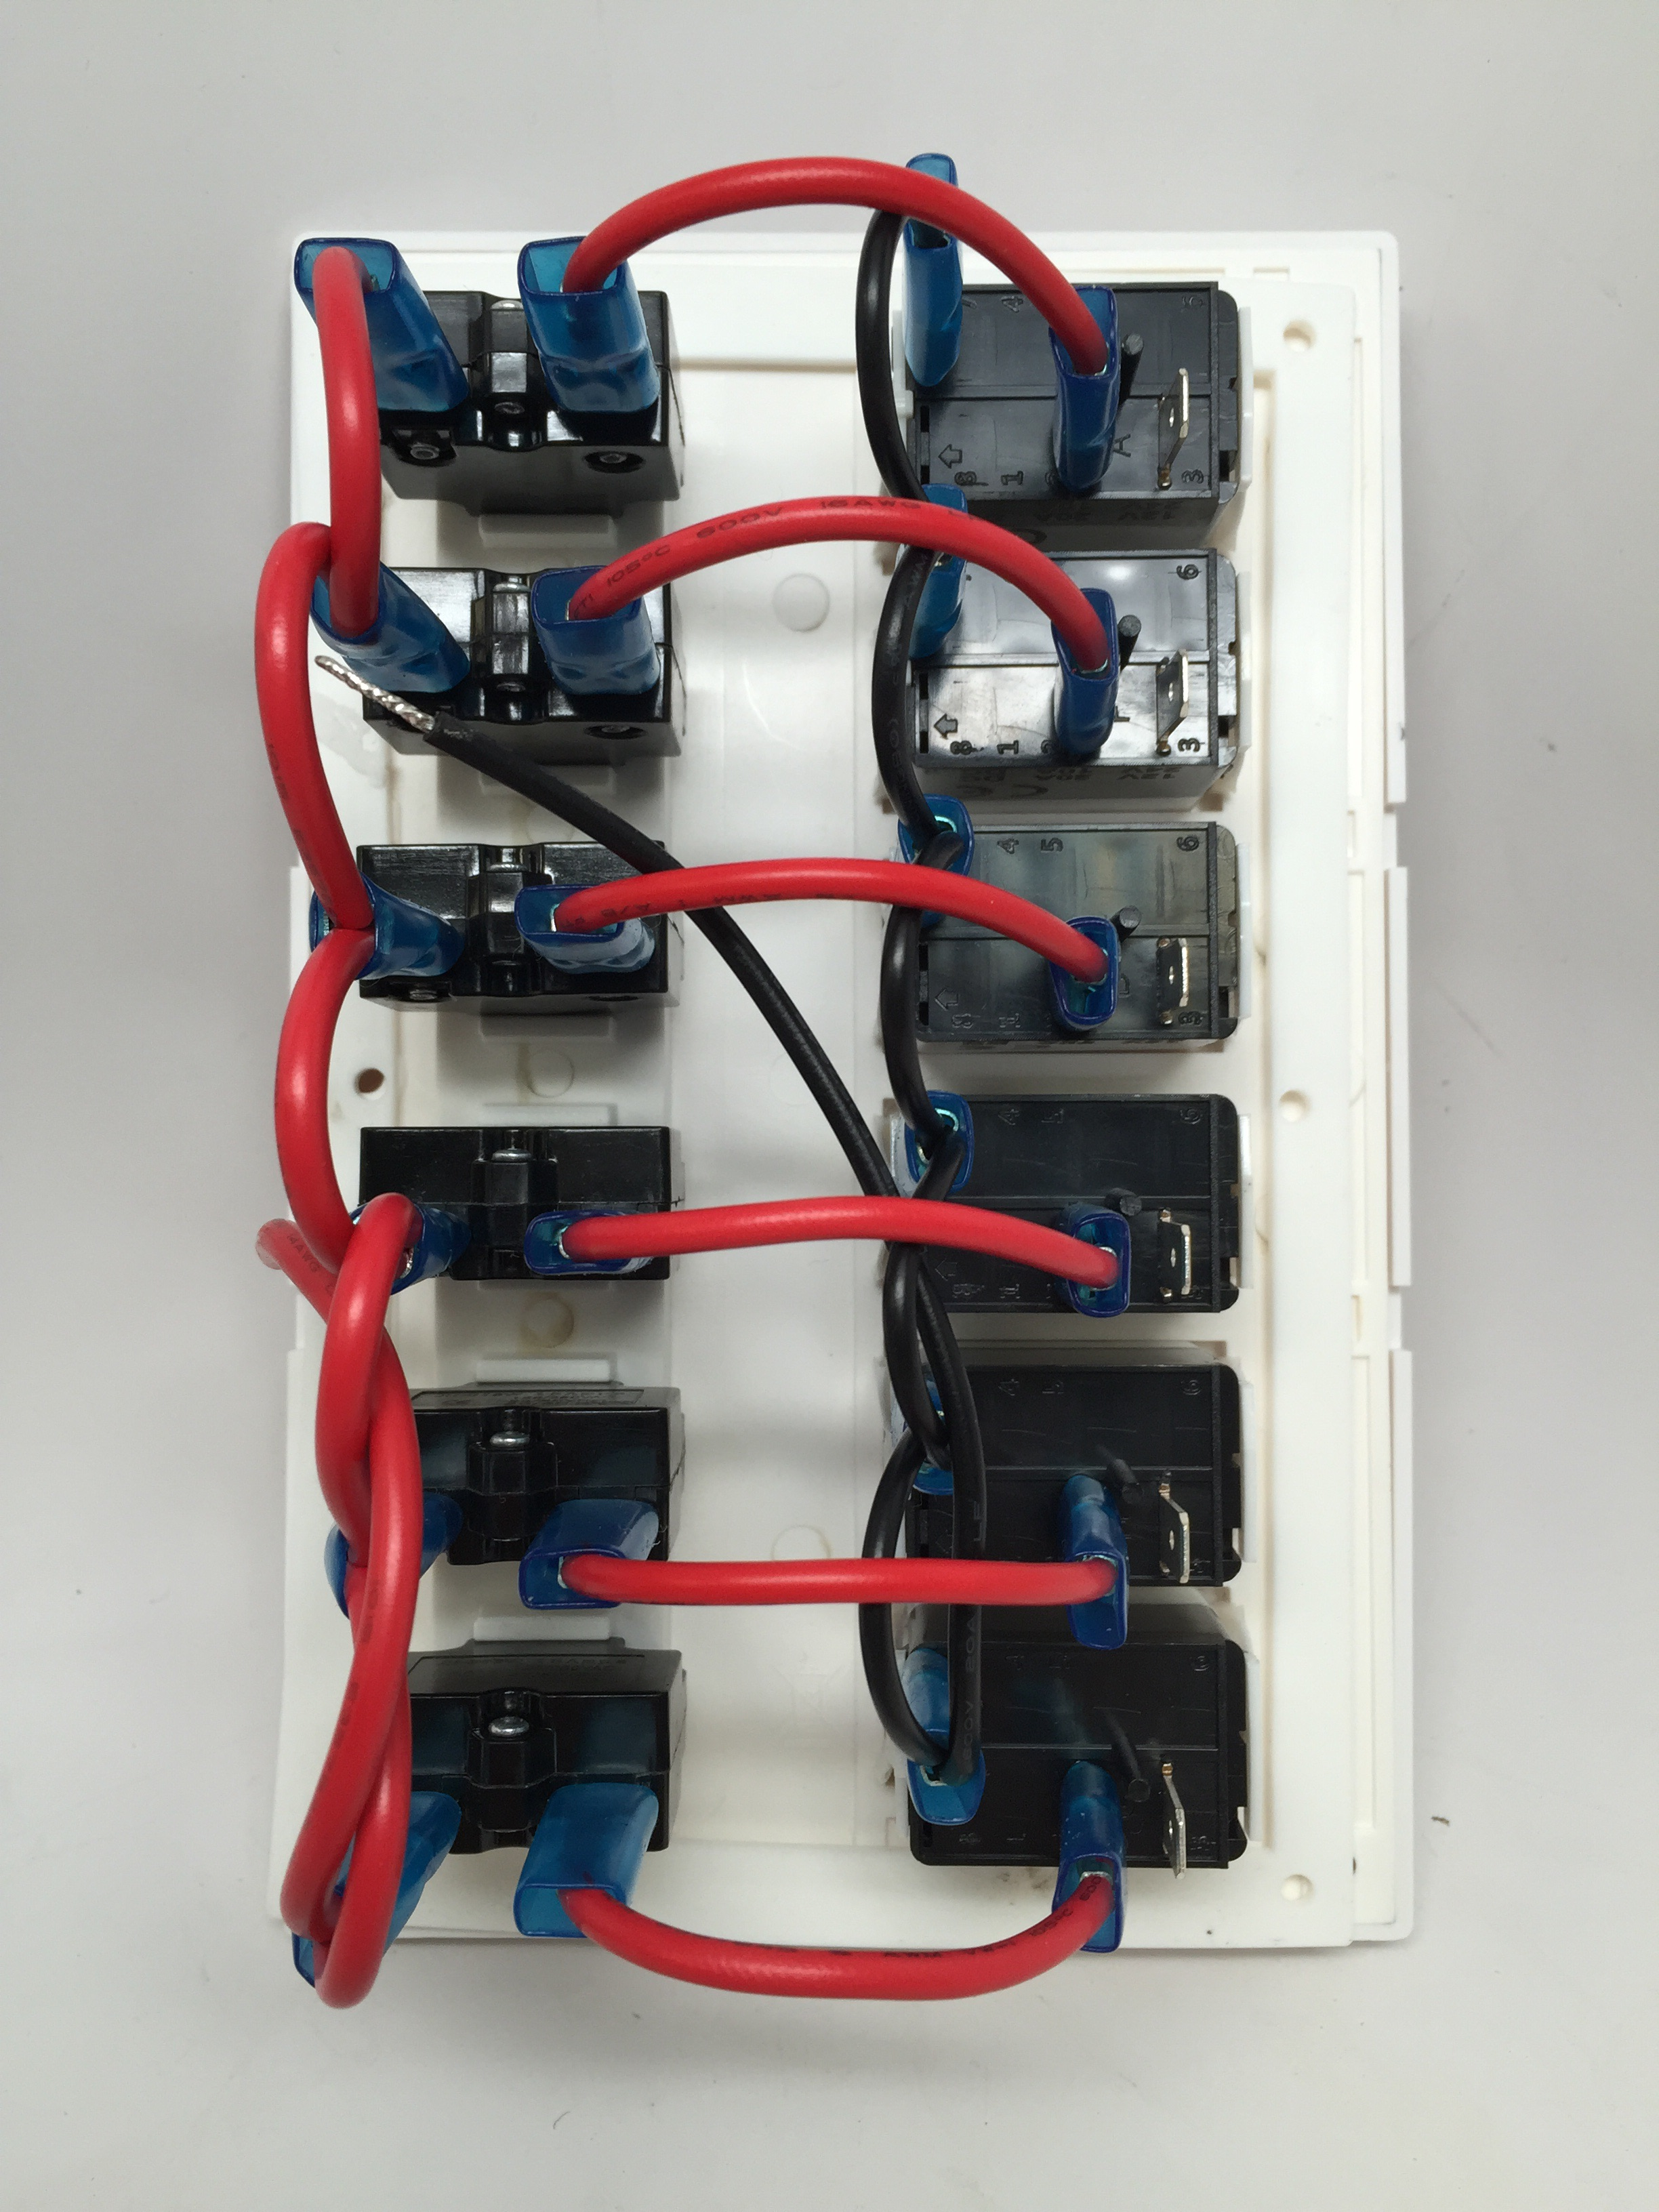 P11176WHB 6 marine boat waterproof white switch panel circuit breaker 6 gang marine switch panel wiring diagram at n-0.co